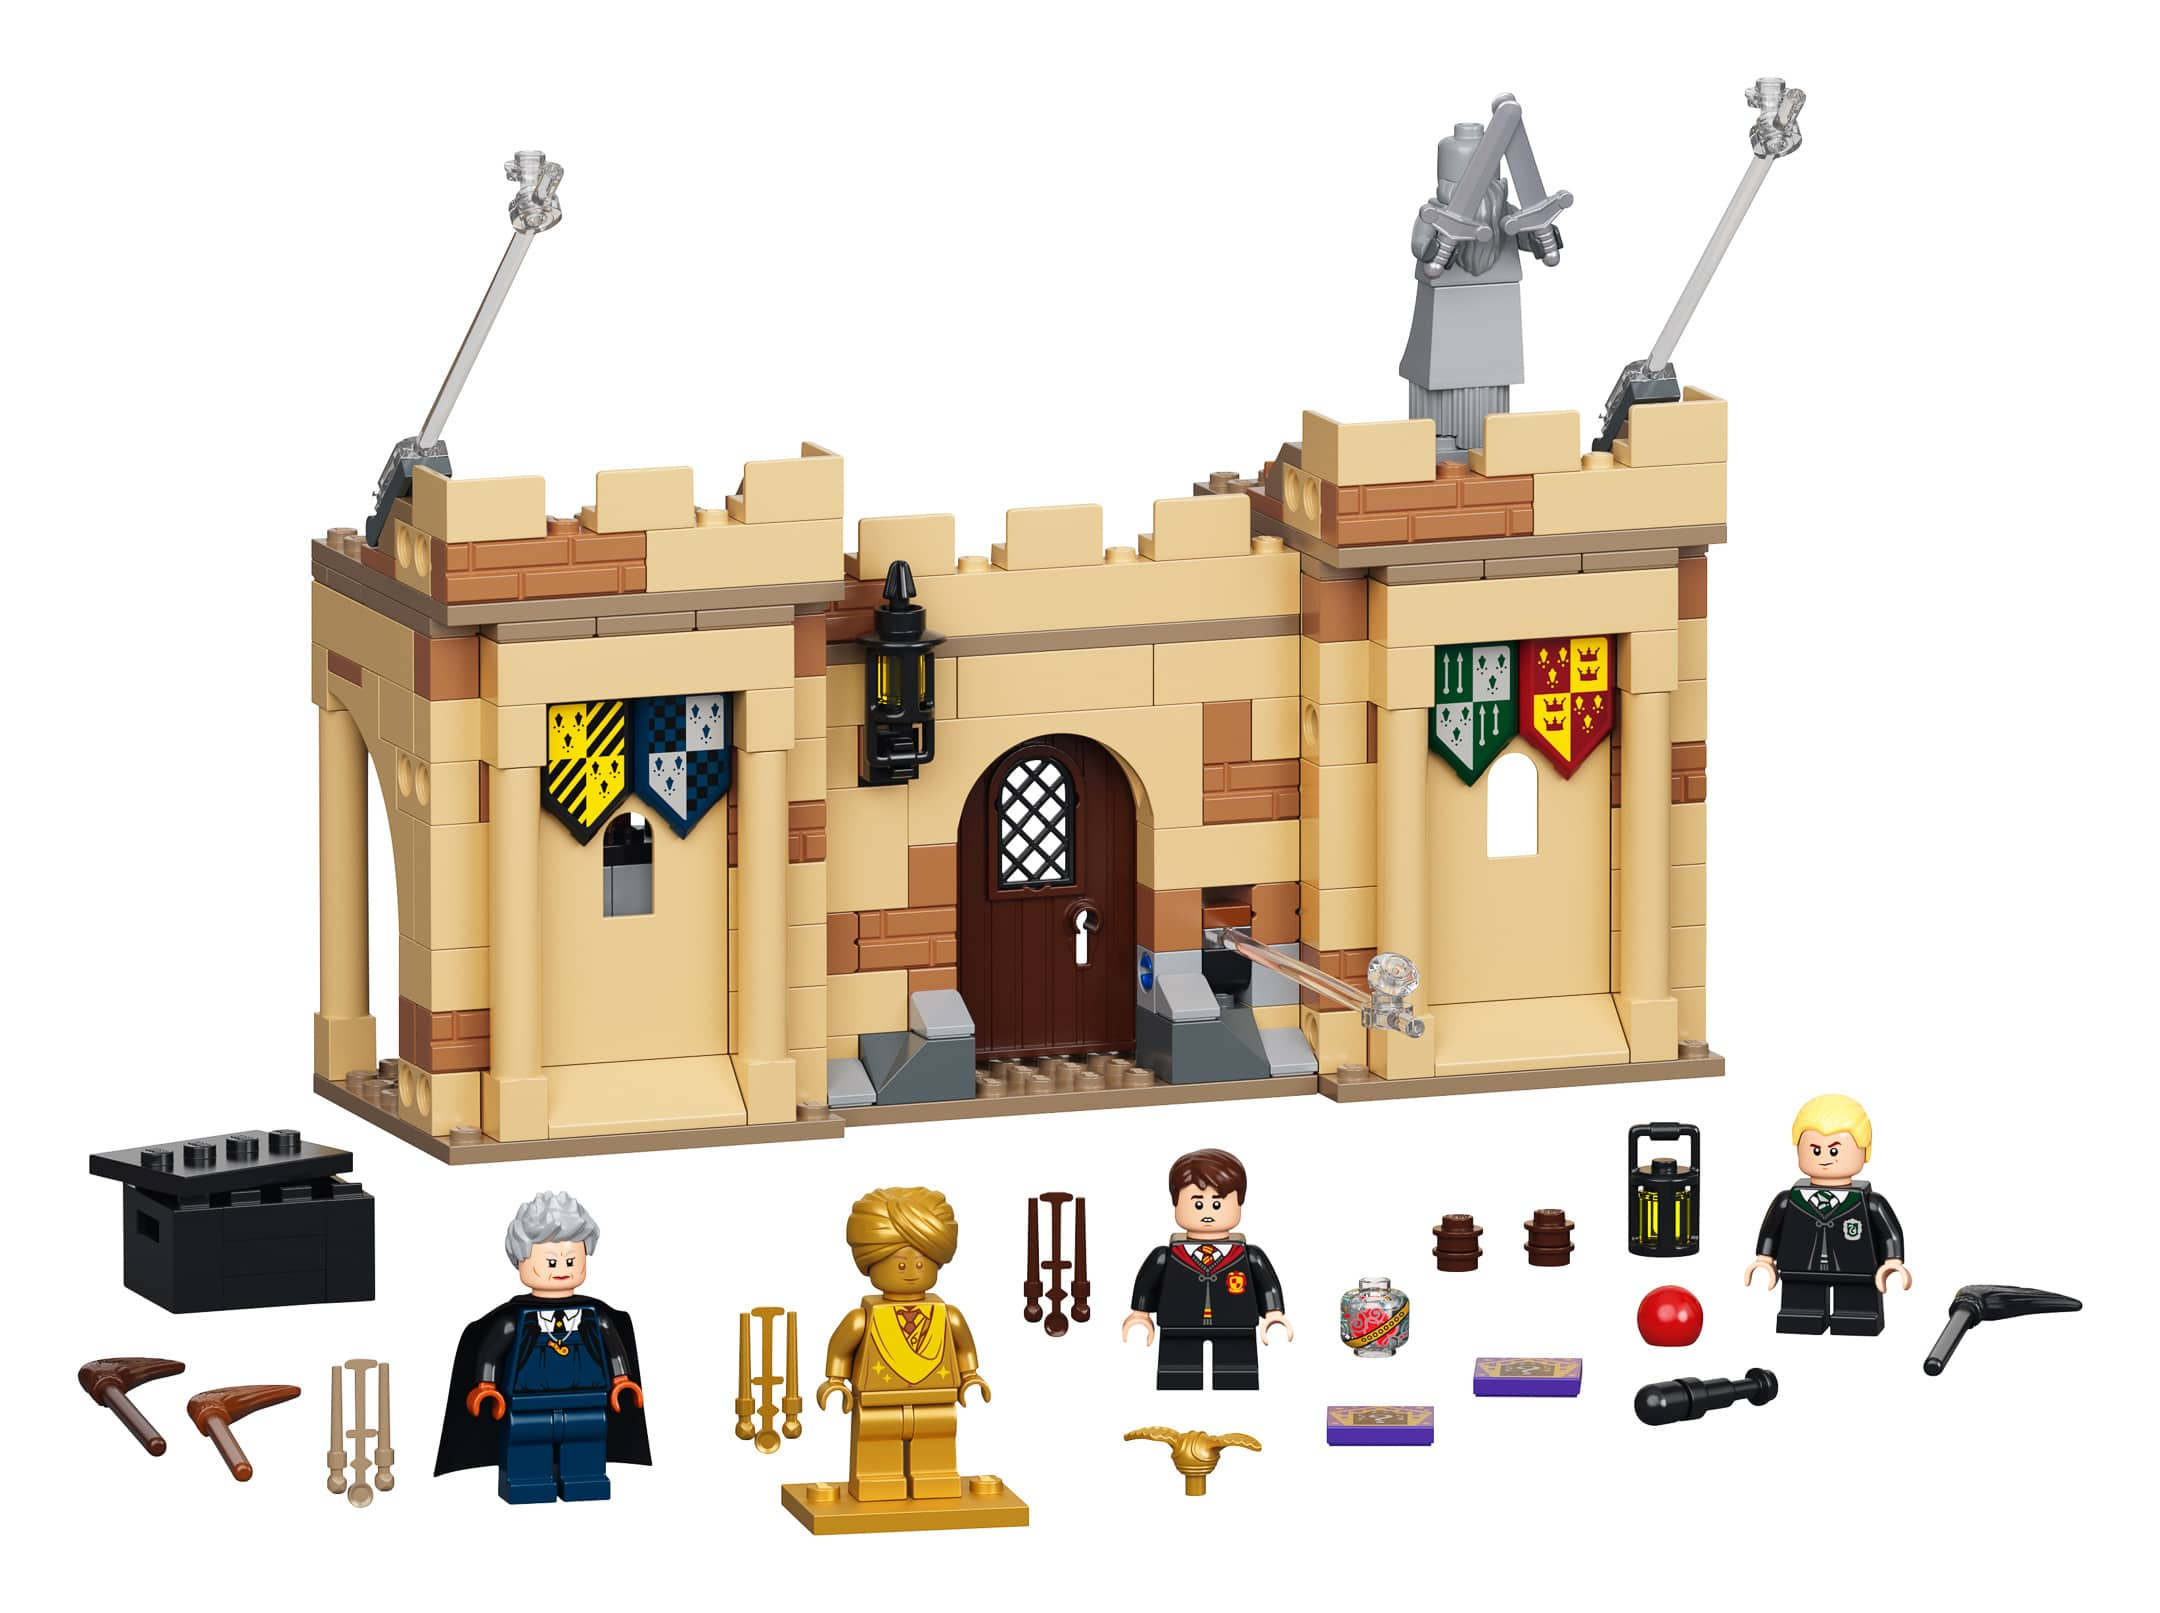 LEGO Harry Potter marks its 20th anniversary with 8 new sets 20